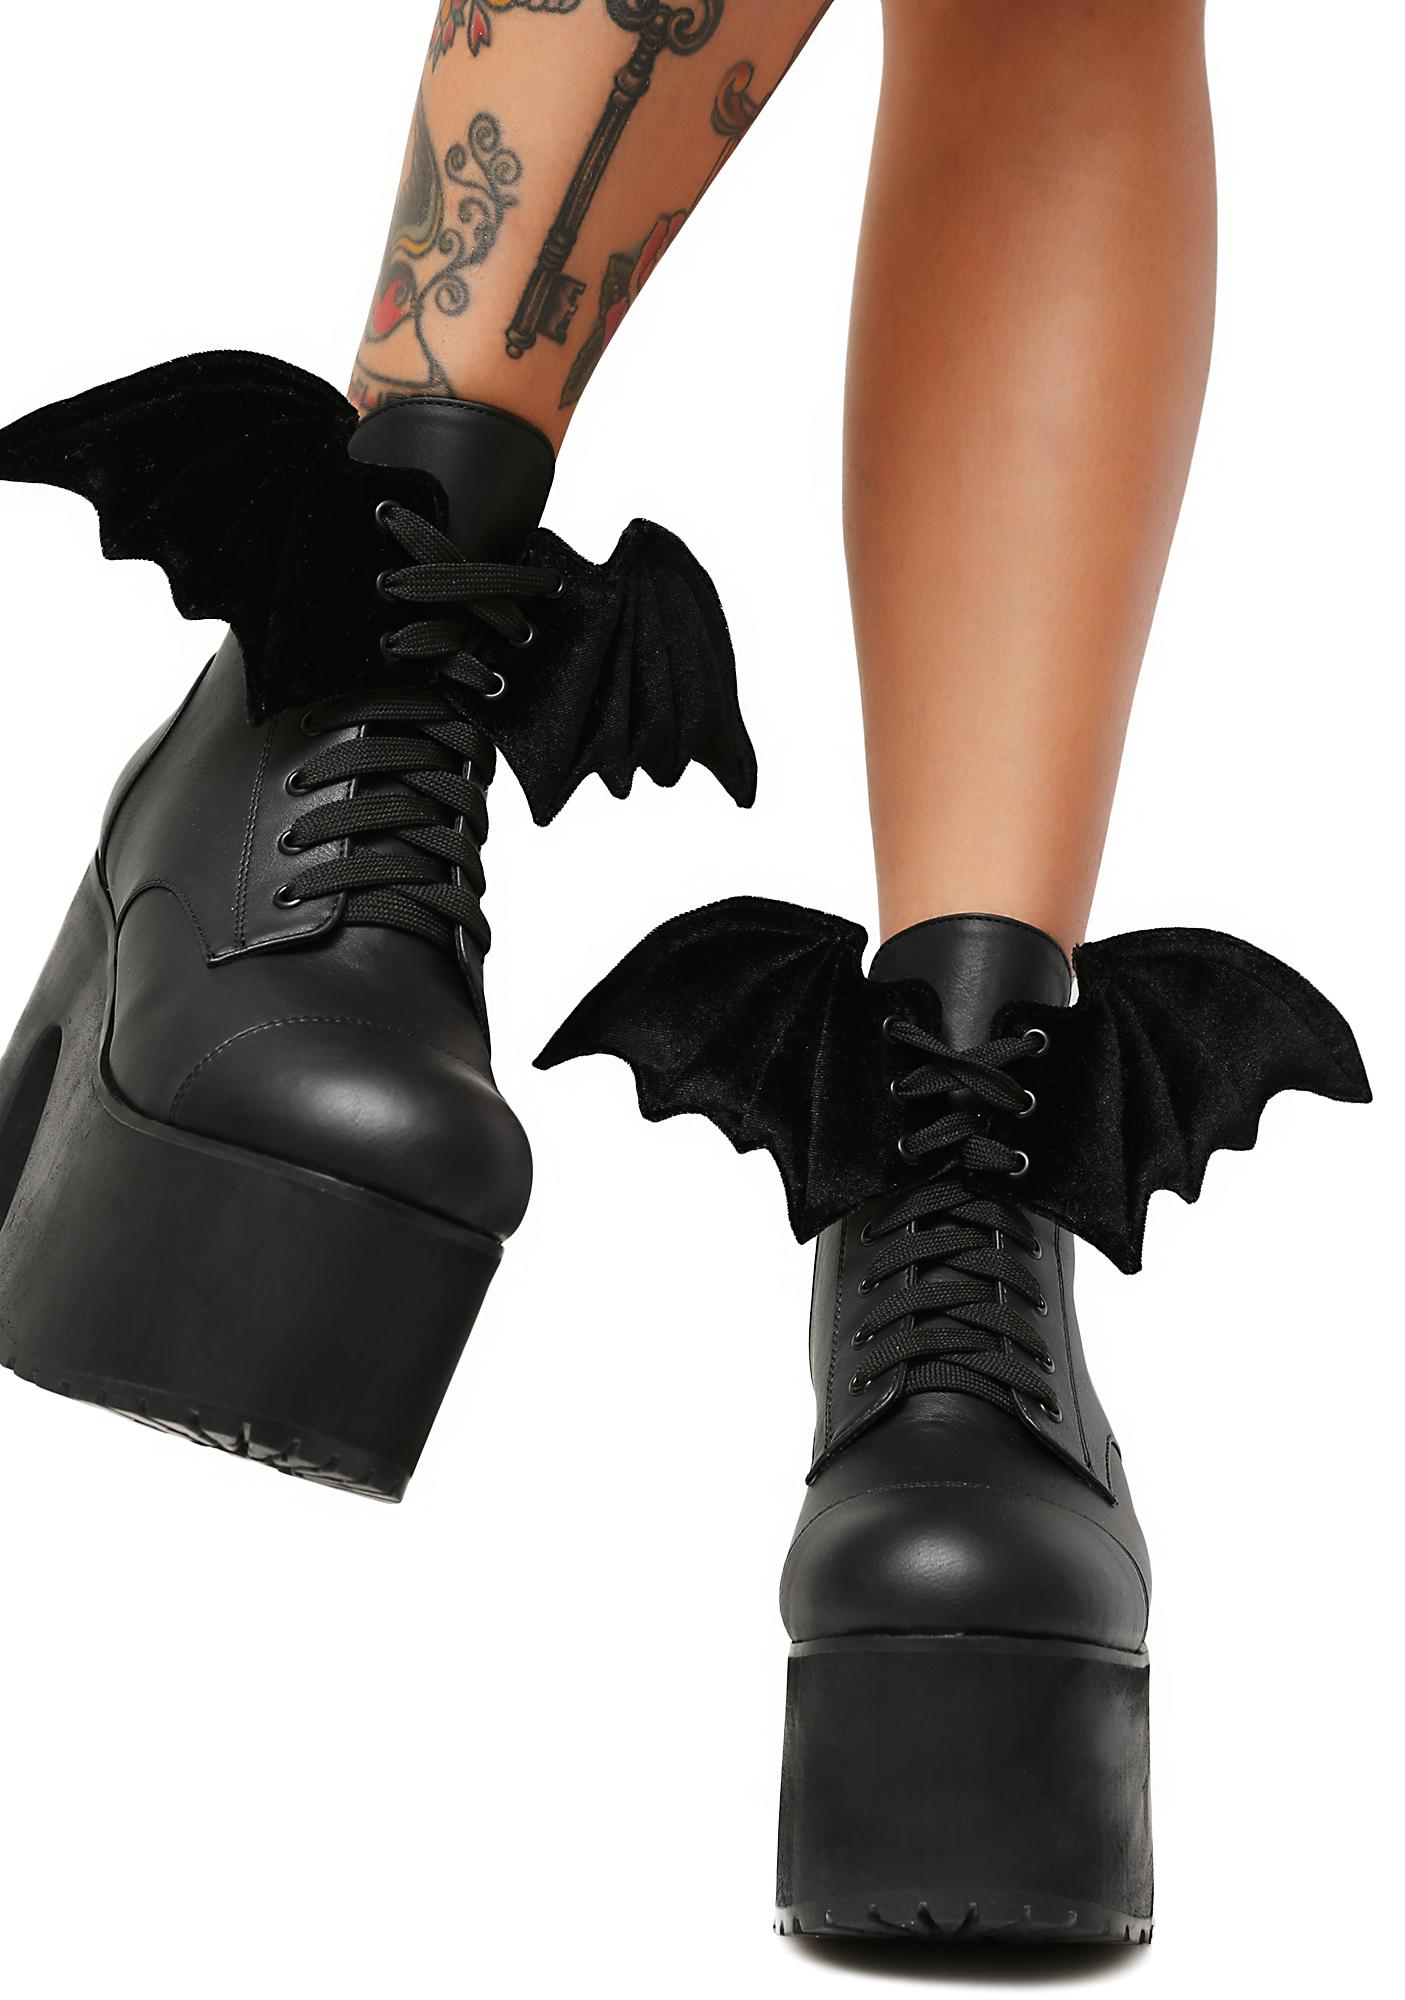 4c3a19414f73 Current Mood Gothic Platform Boots | Dolls Kill